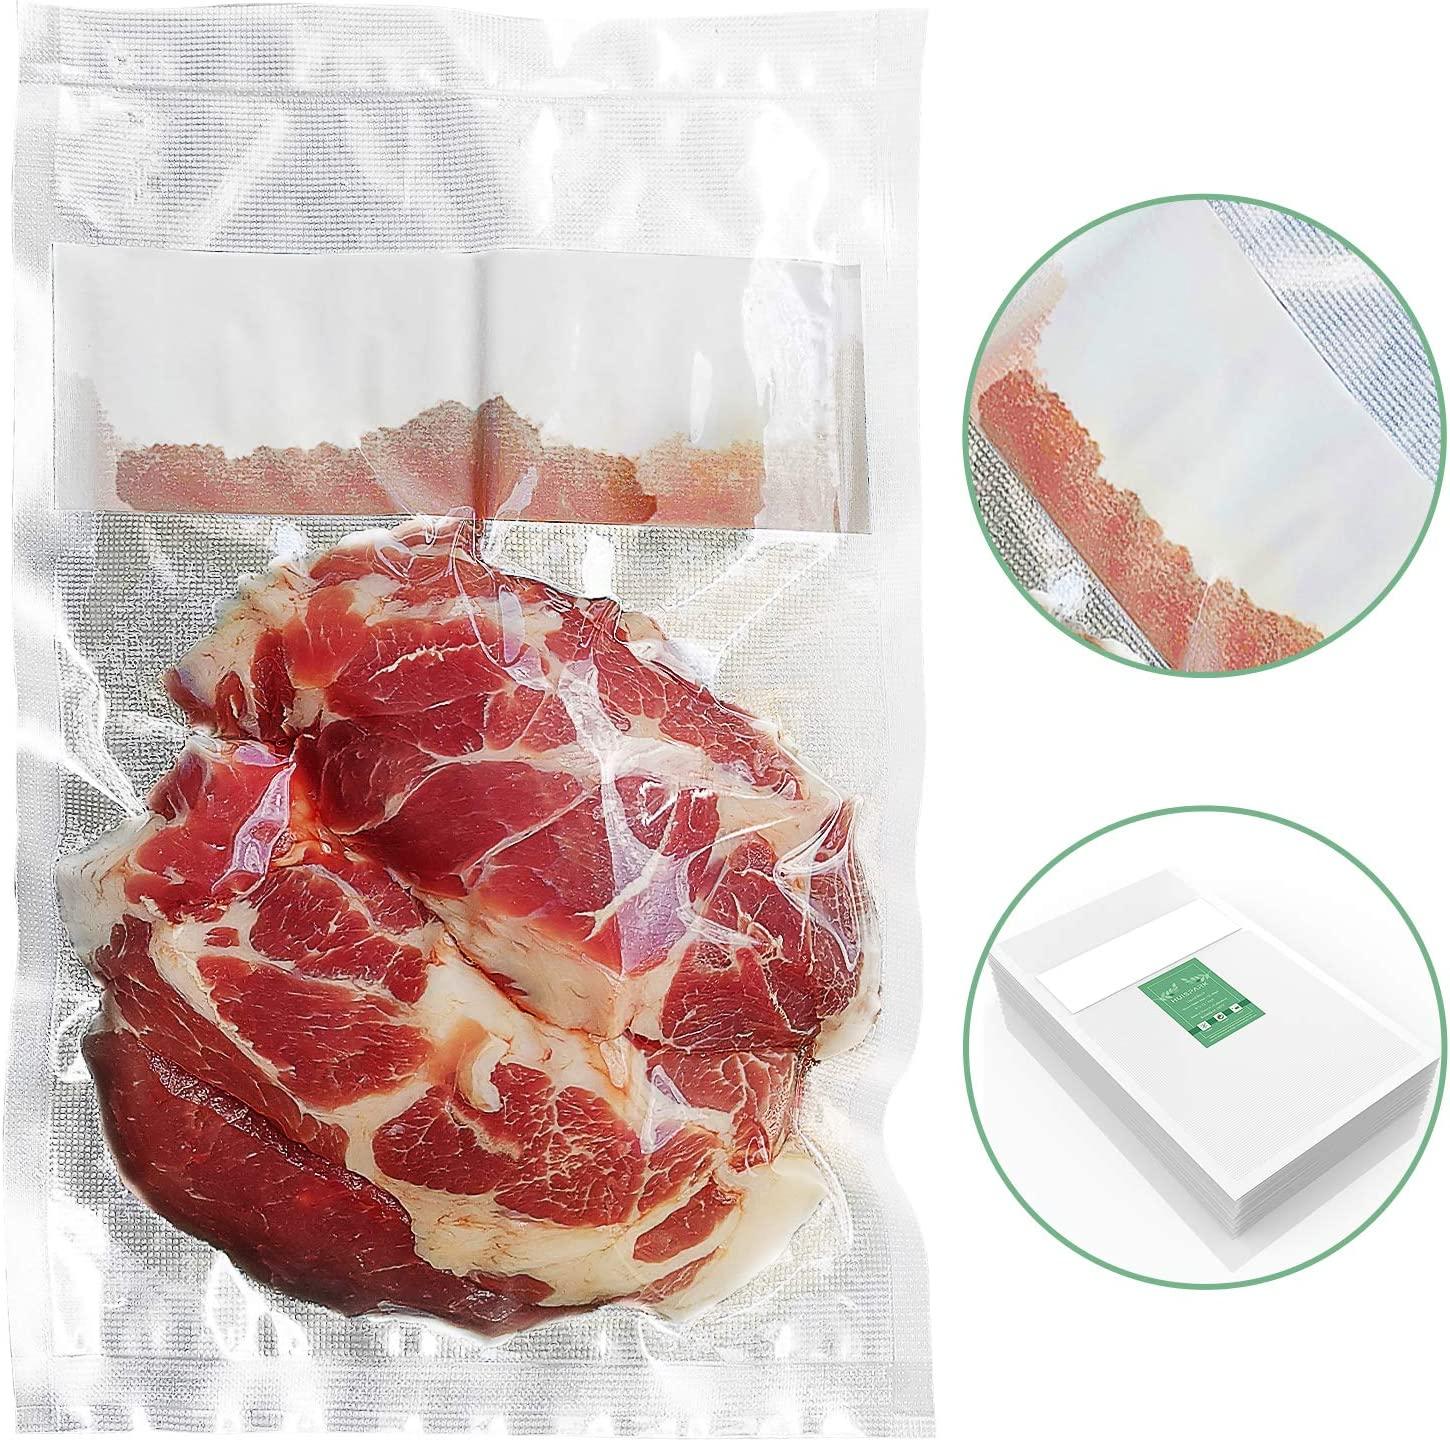 8×13 Inch Liquid Block Vacuum Sealer Bags,Withstand High Temperature UP 280°F,Freezable and Heatable with Absorbent Cotton Design,Design for Food with Water Meat Vacuum Storage(50Pcs)